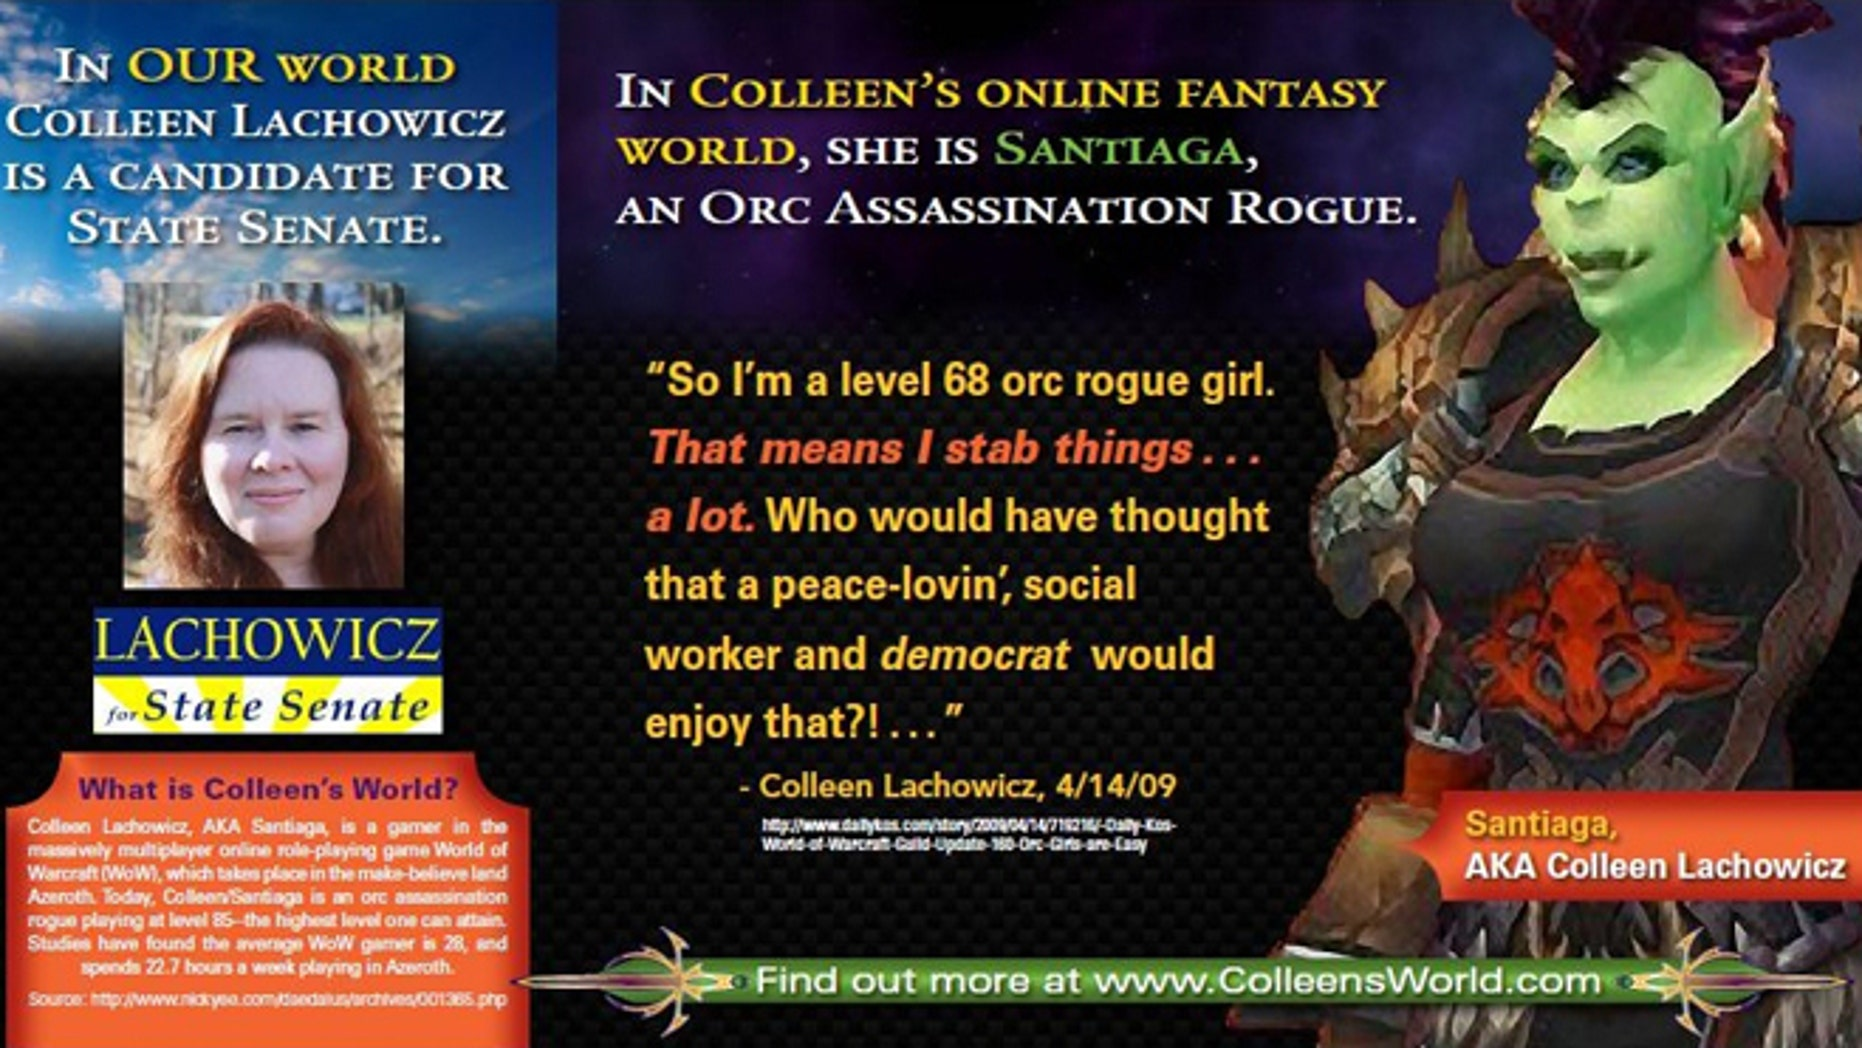 The Maine GOP takes issue with how Democratic candidate Colleen Lachowicz spends her spare time: online, as a level-85 orc in the videogame World of Warcraft.